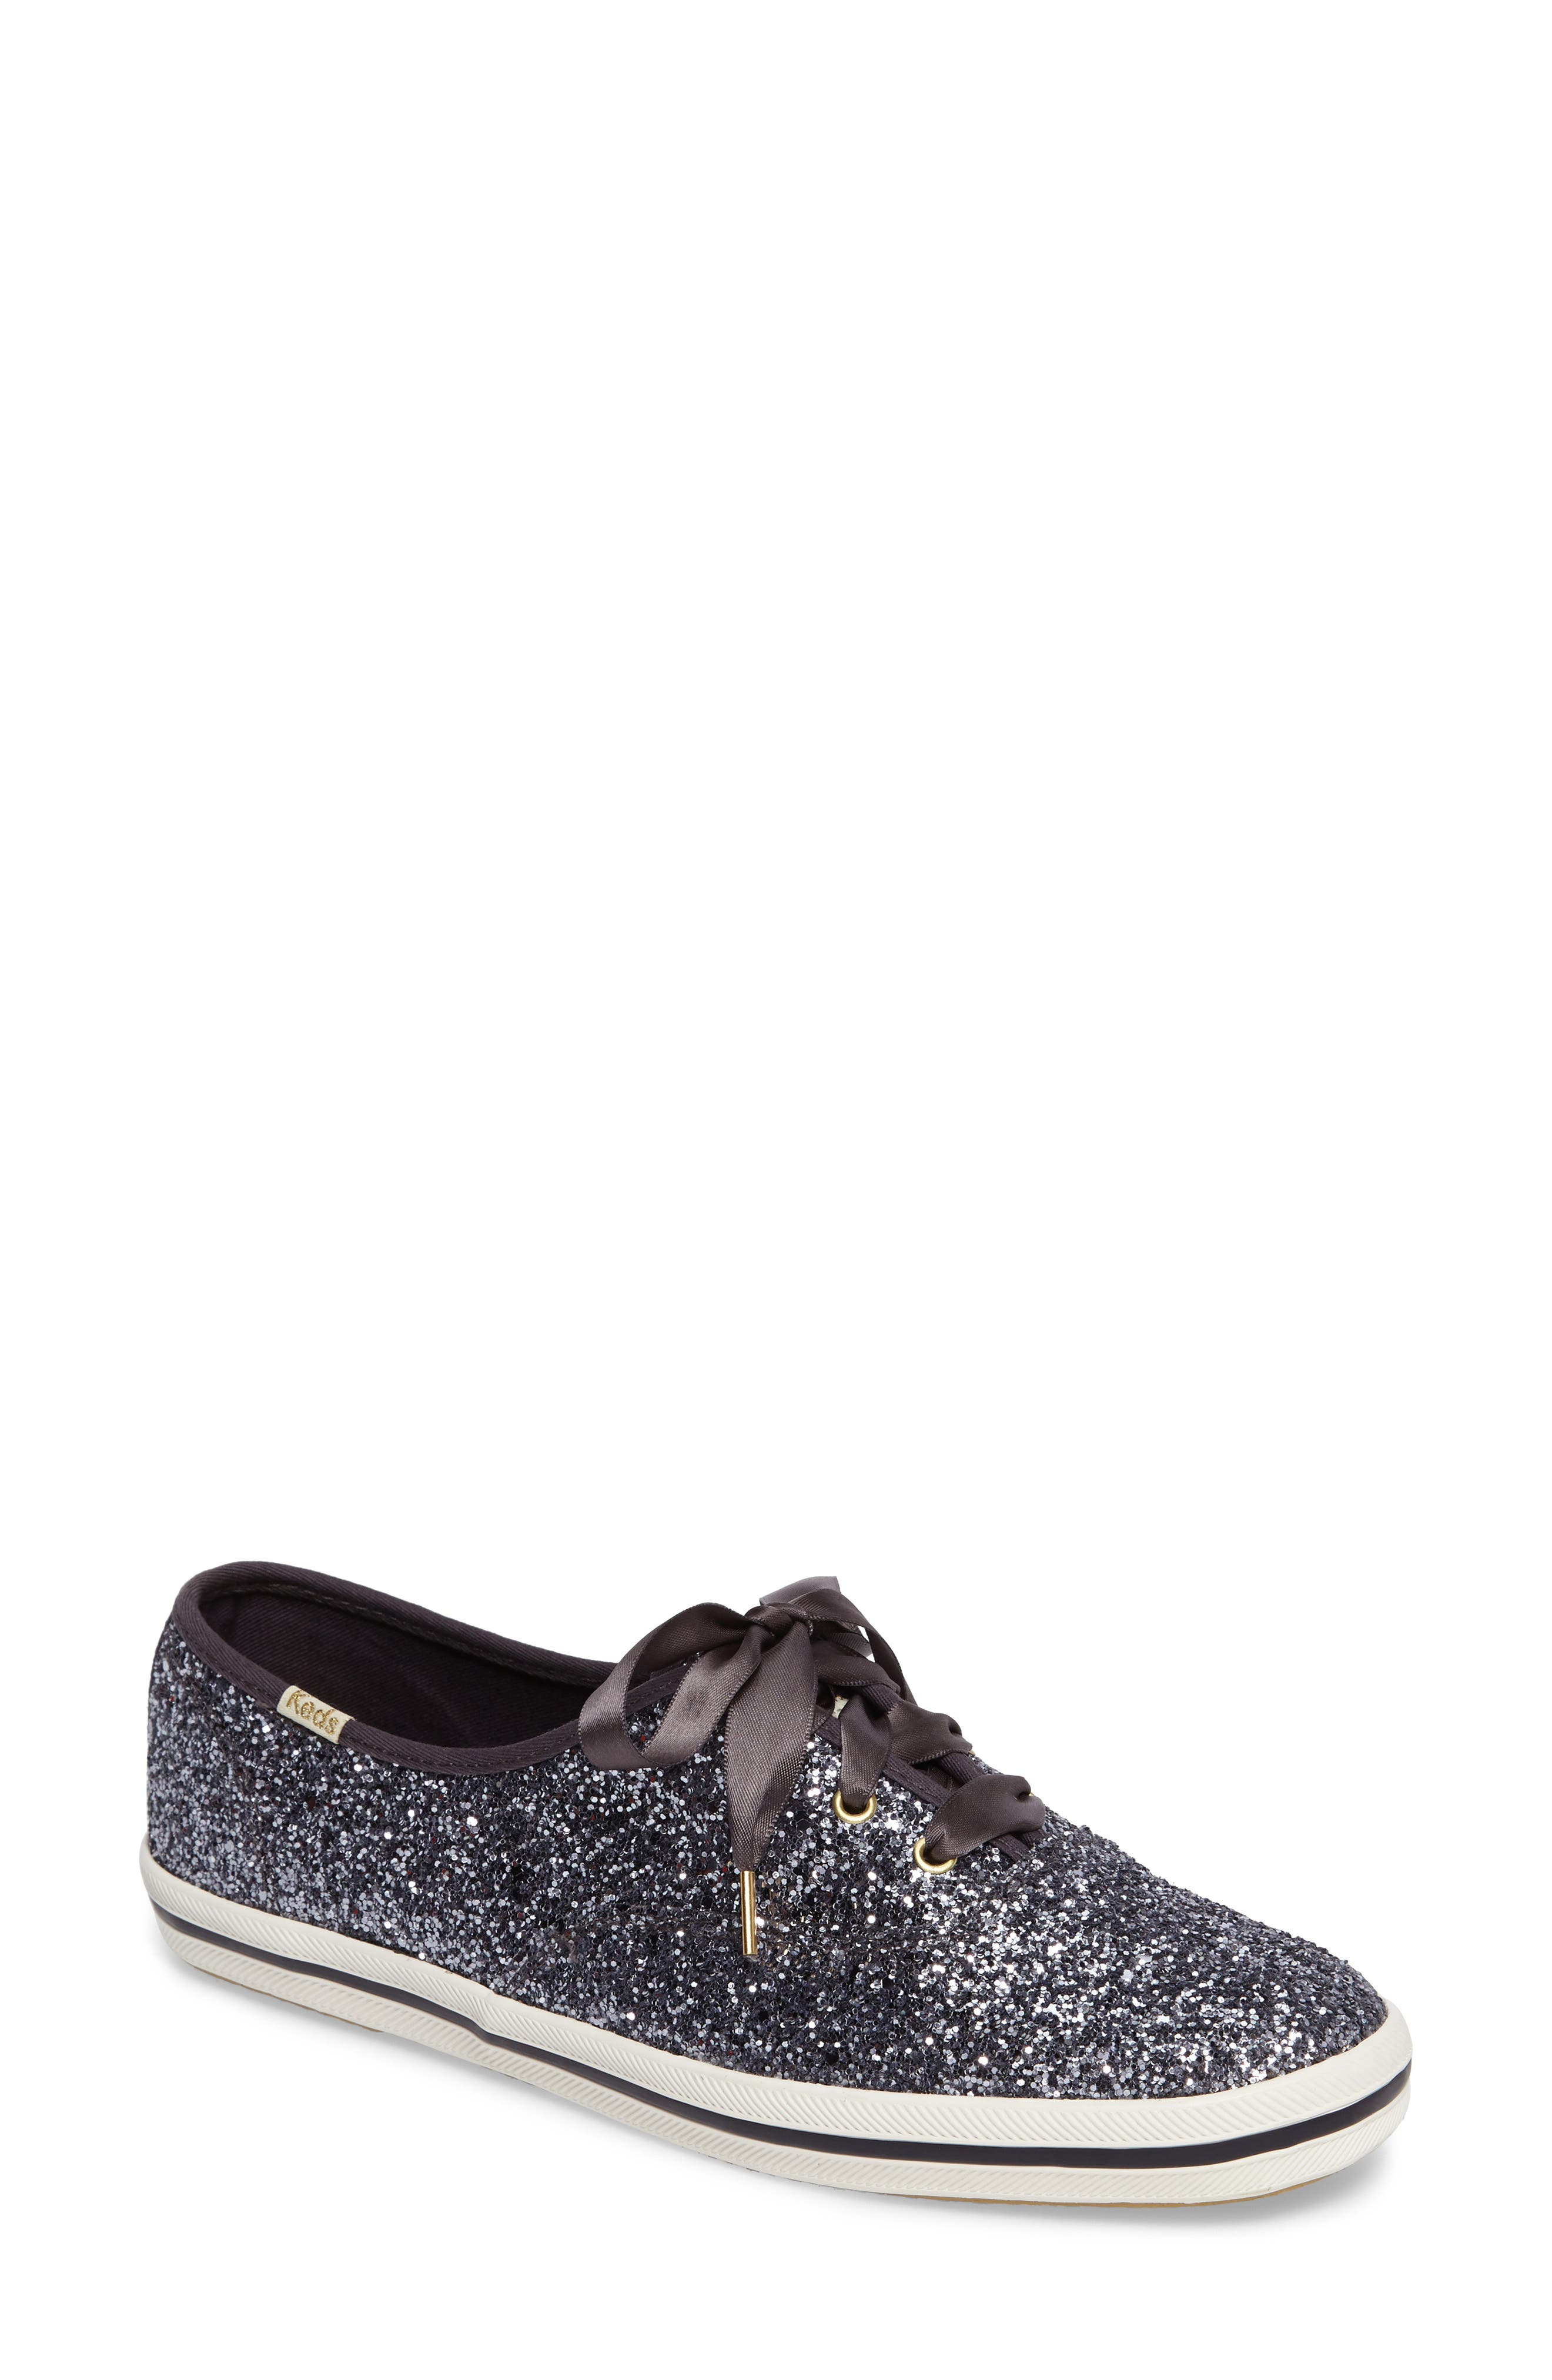 KEDS<SUP>®</SUP> FOR KATE SPADE NEW YORK, glitter sneaker, Main thumbnail 1, color, PEWTER